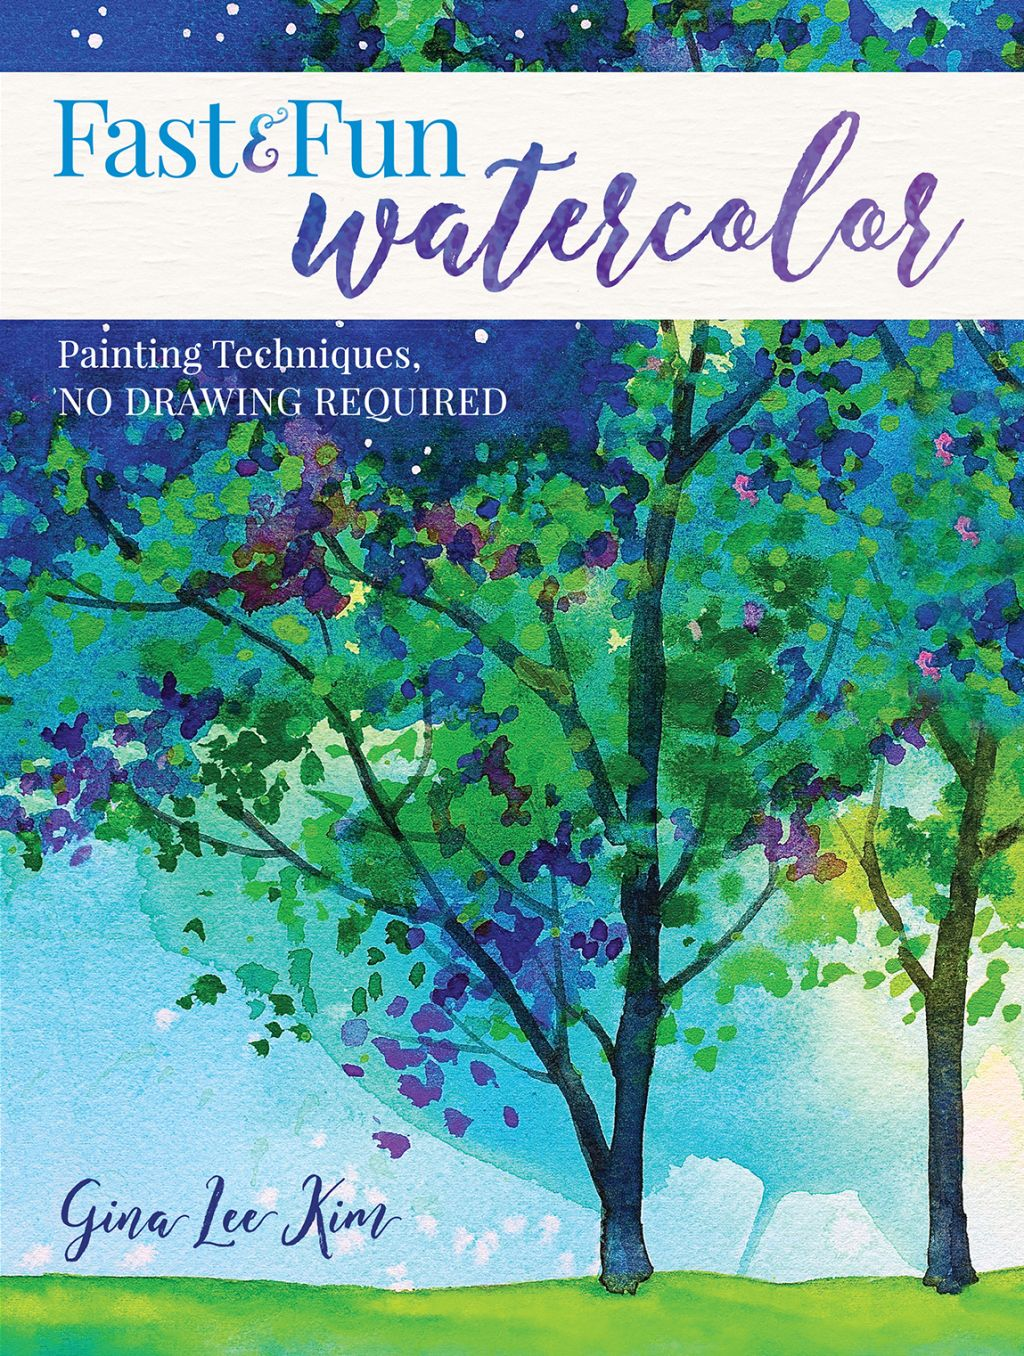 Fast And Fun Watercolor Ebook Painting Techniques Watercolor